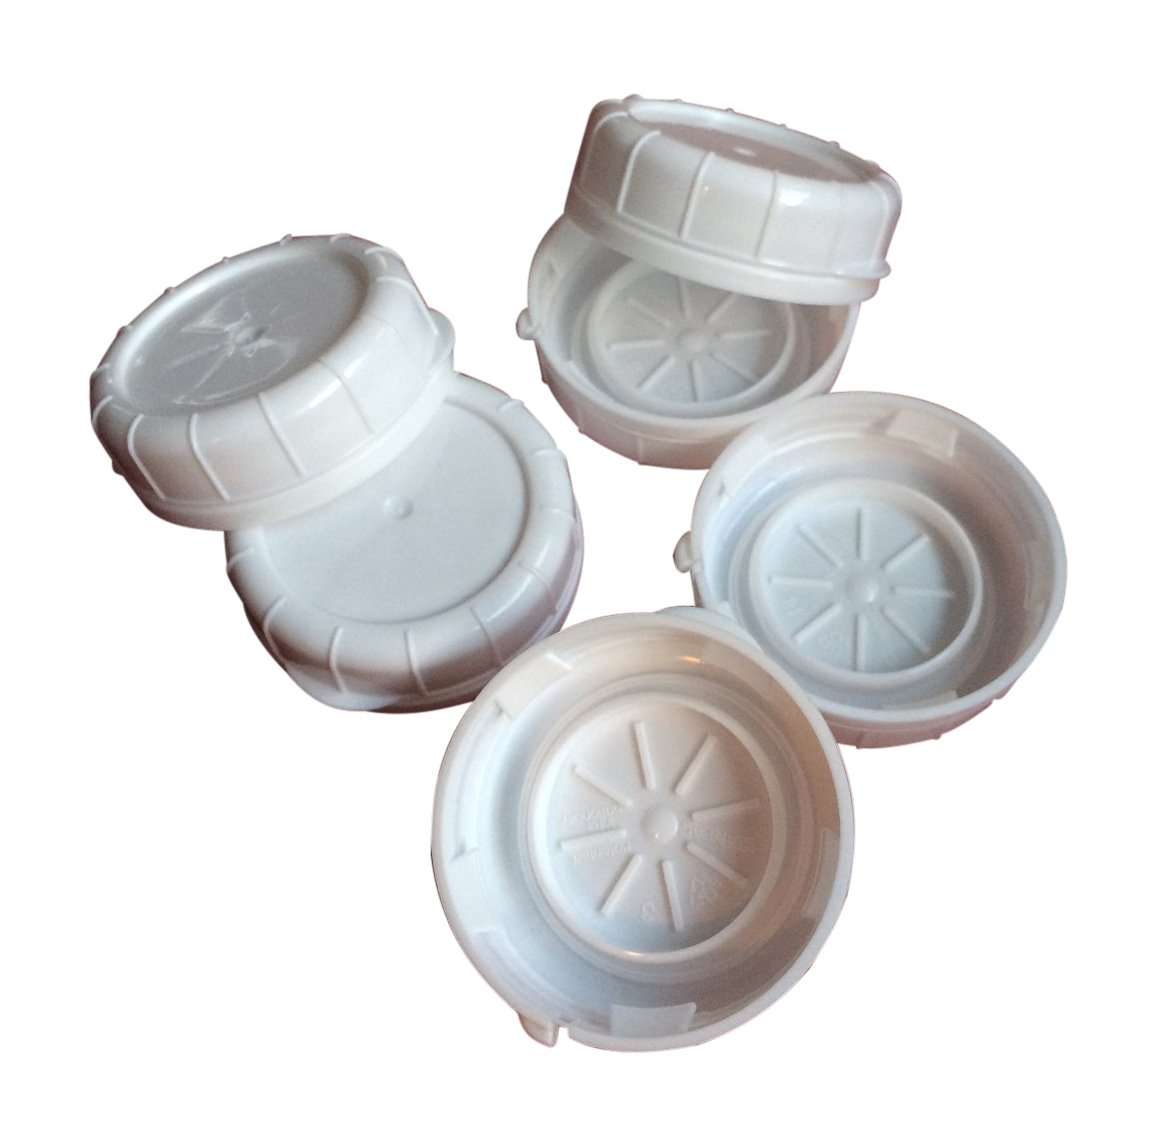 The Dairy Shoppe Replacement Glass Milk Bottle Caps, Fits 48 mm Libbey & Stan-Pac (Pack of 6) Shenandoah Homestead Supply 48mmTEC